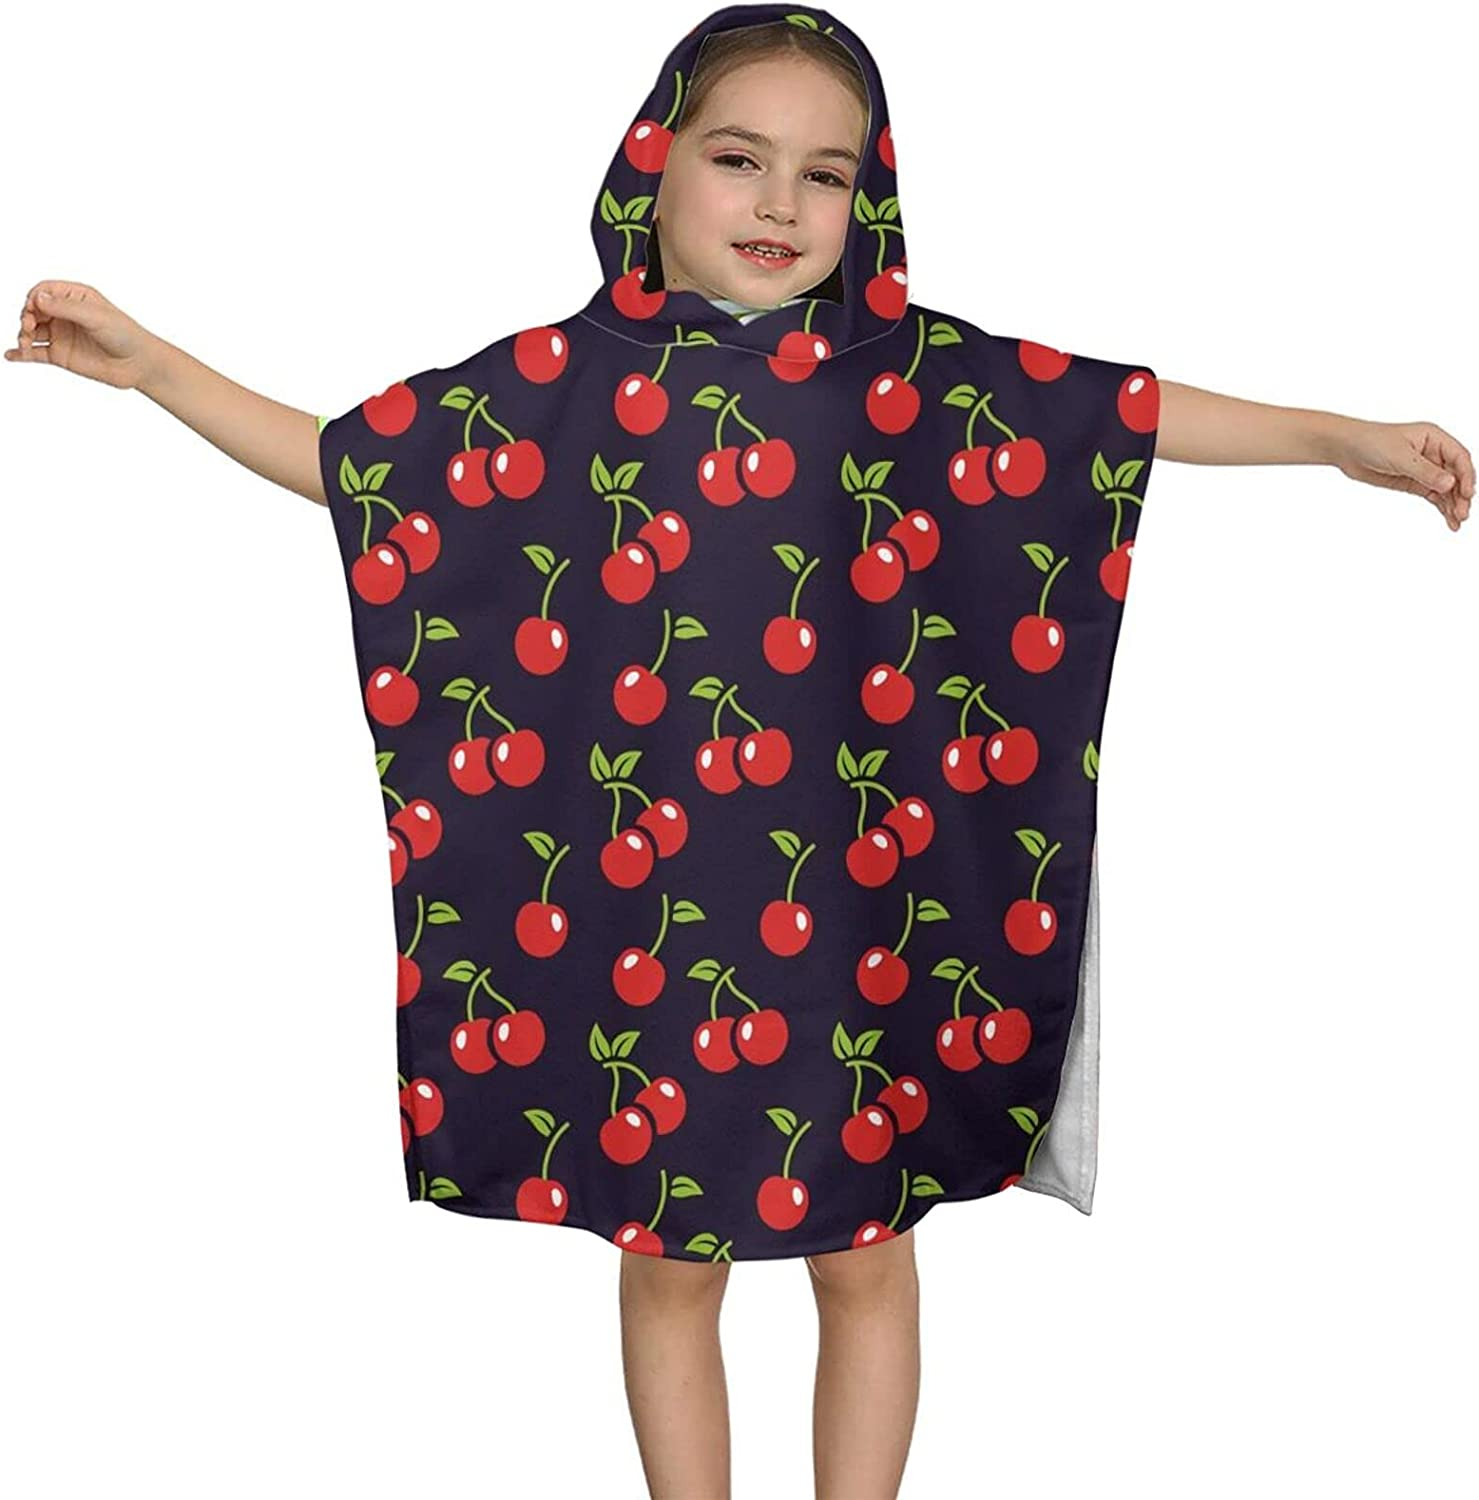 Super Special SALE held Hooded Bath service Towel Red Cherry Kids Soft Wrap Pattern